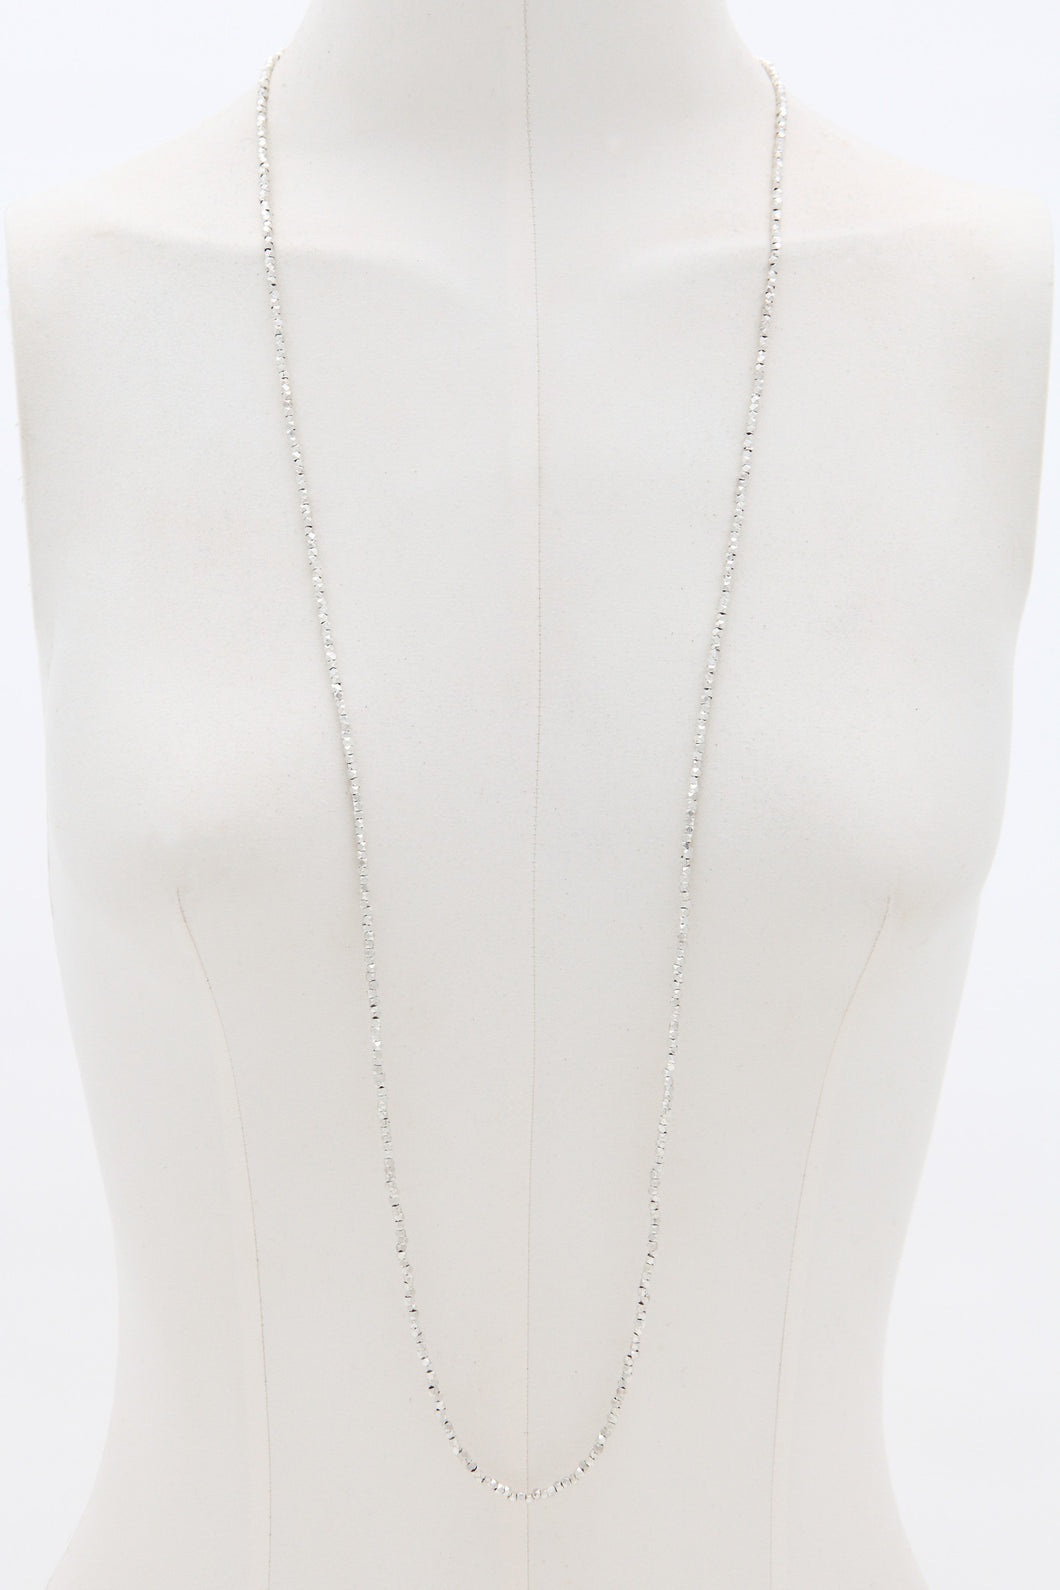 Moksha silver diamond cut necklace - Mie-Style